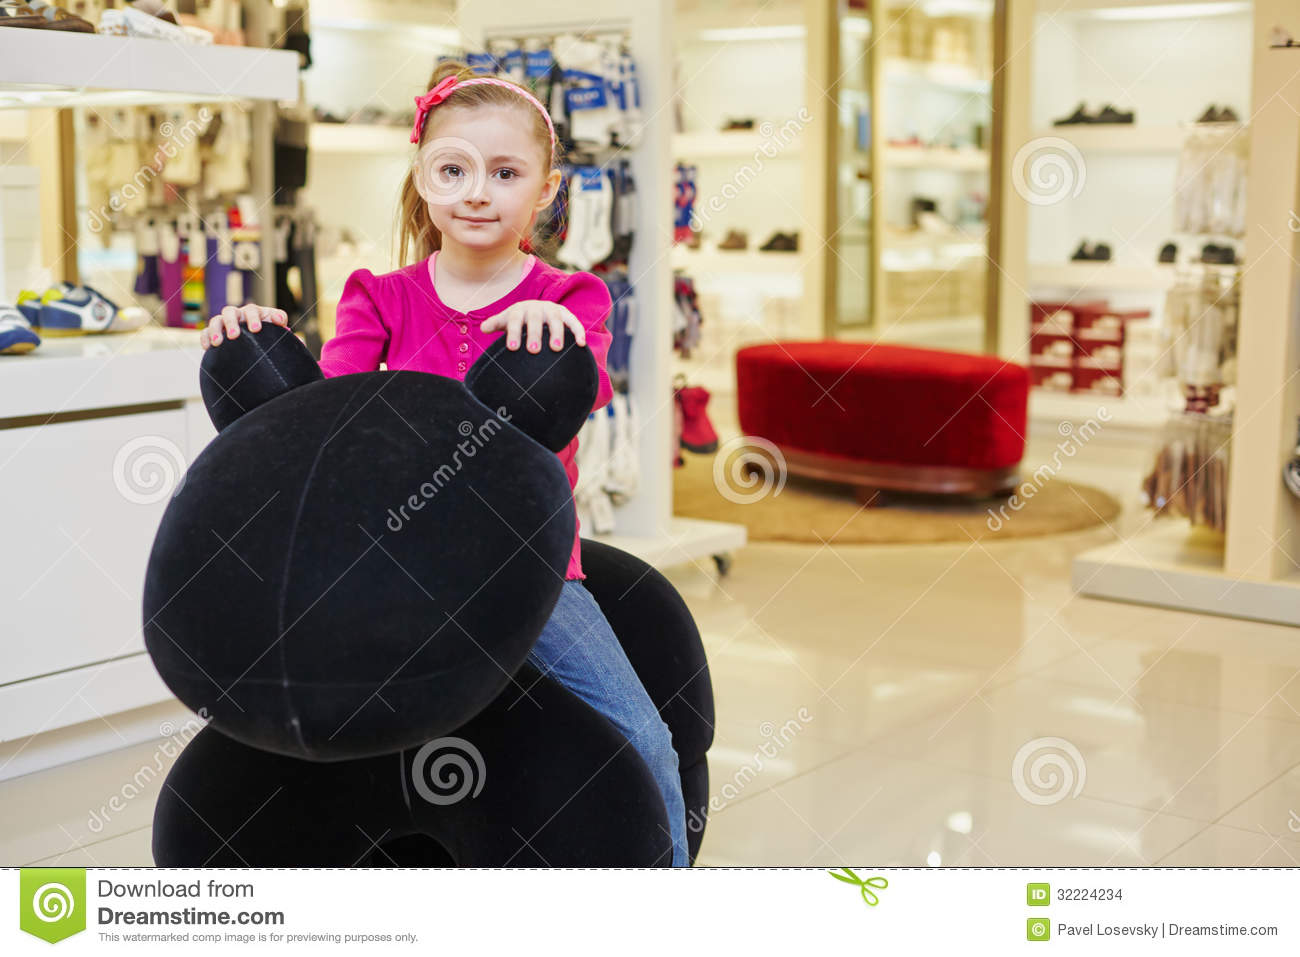 Clothing stores for little girls